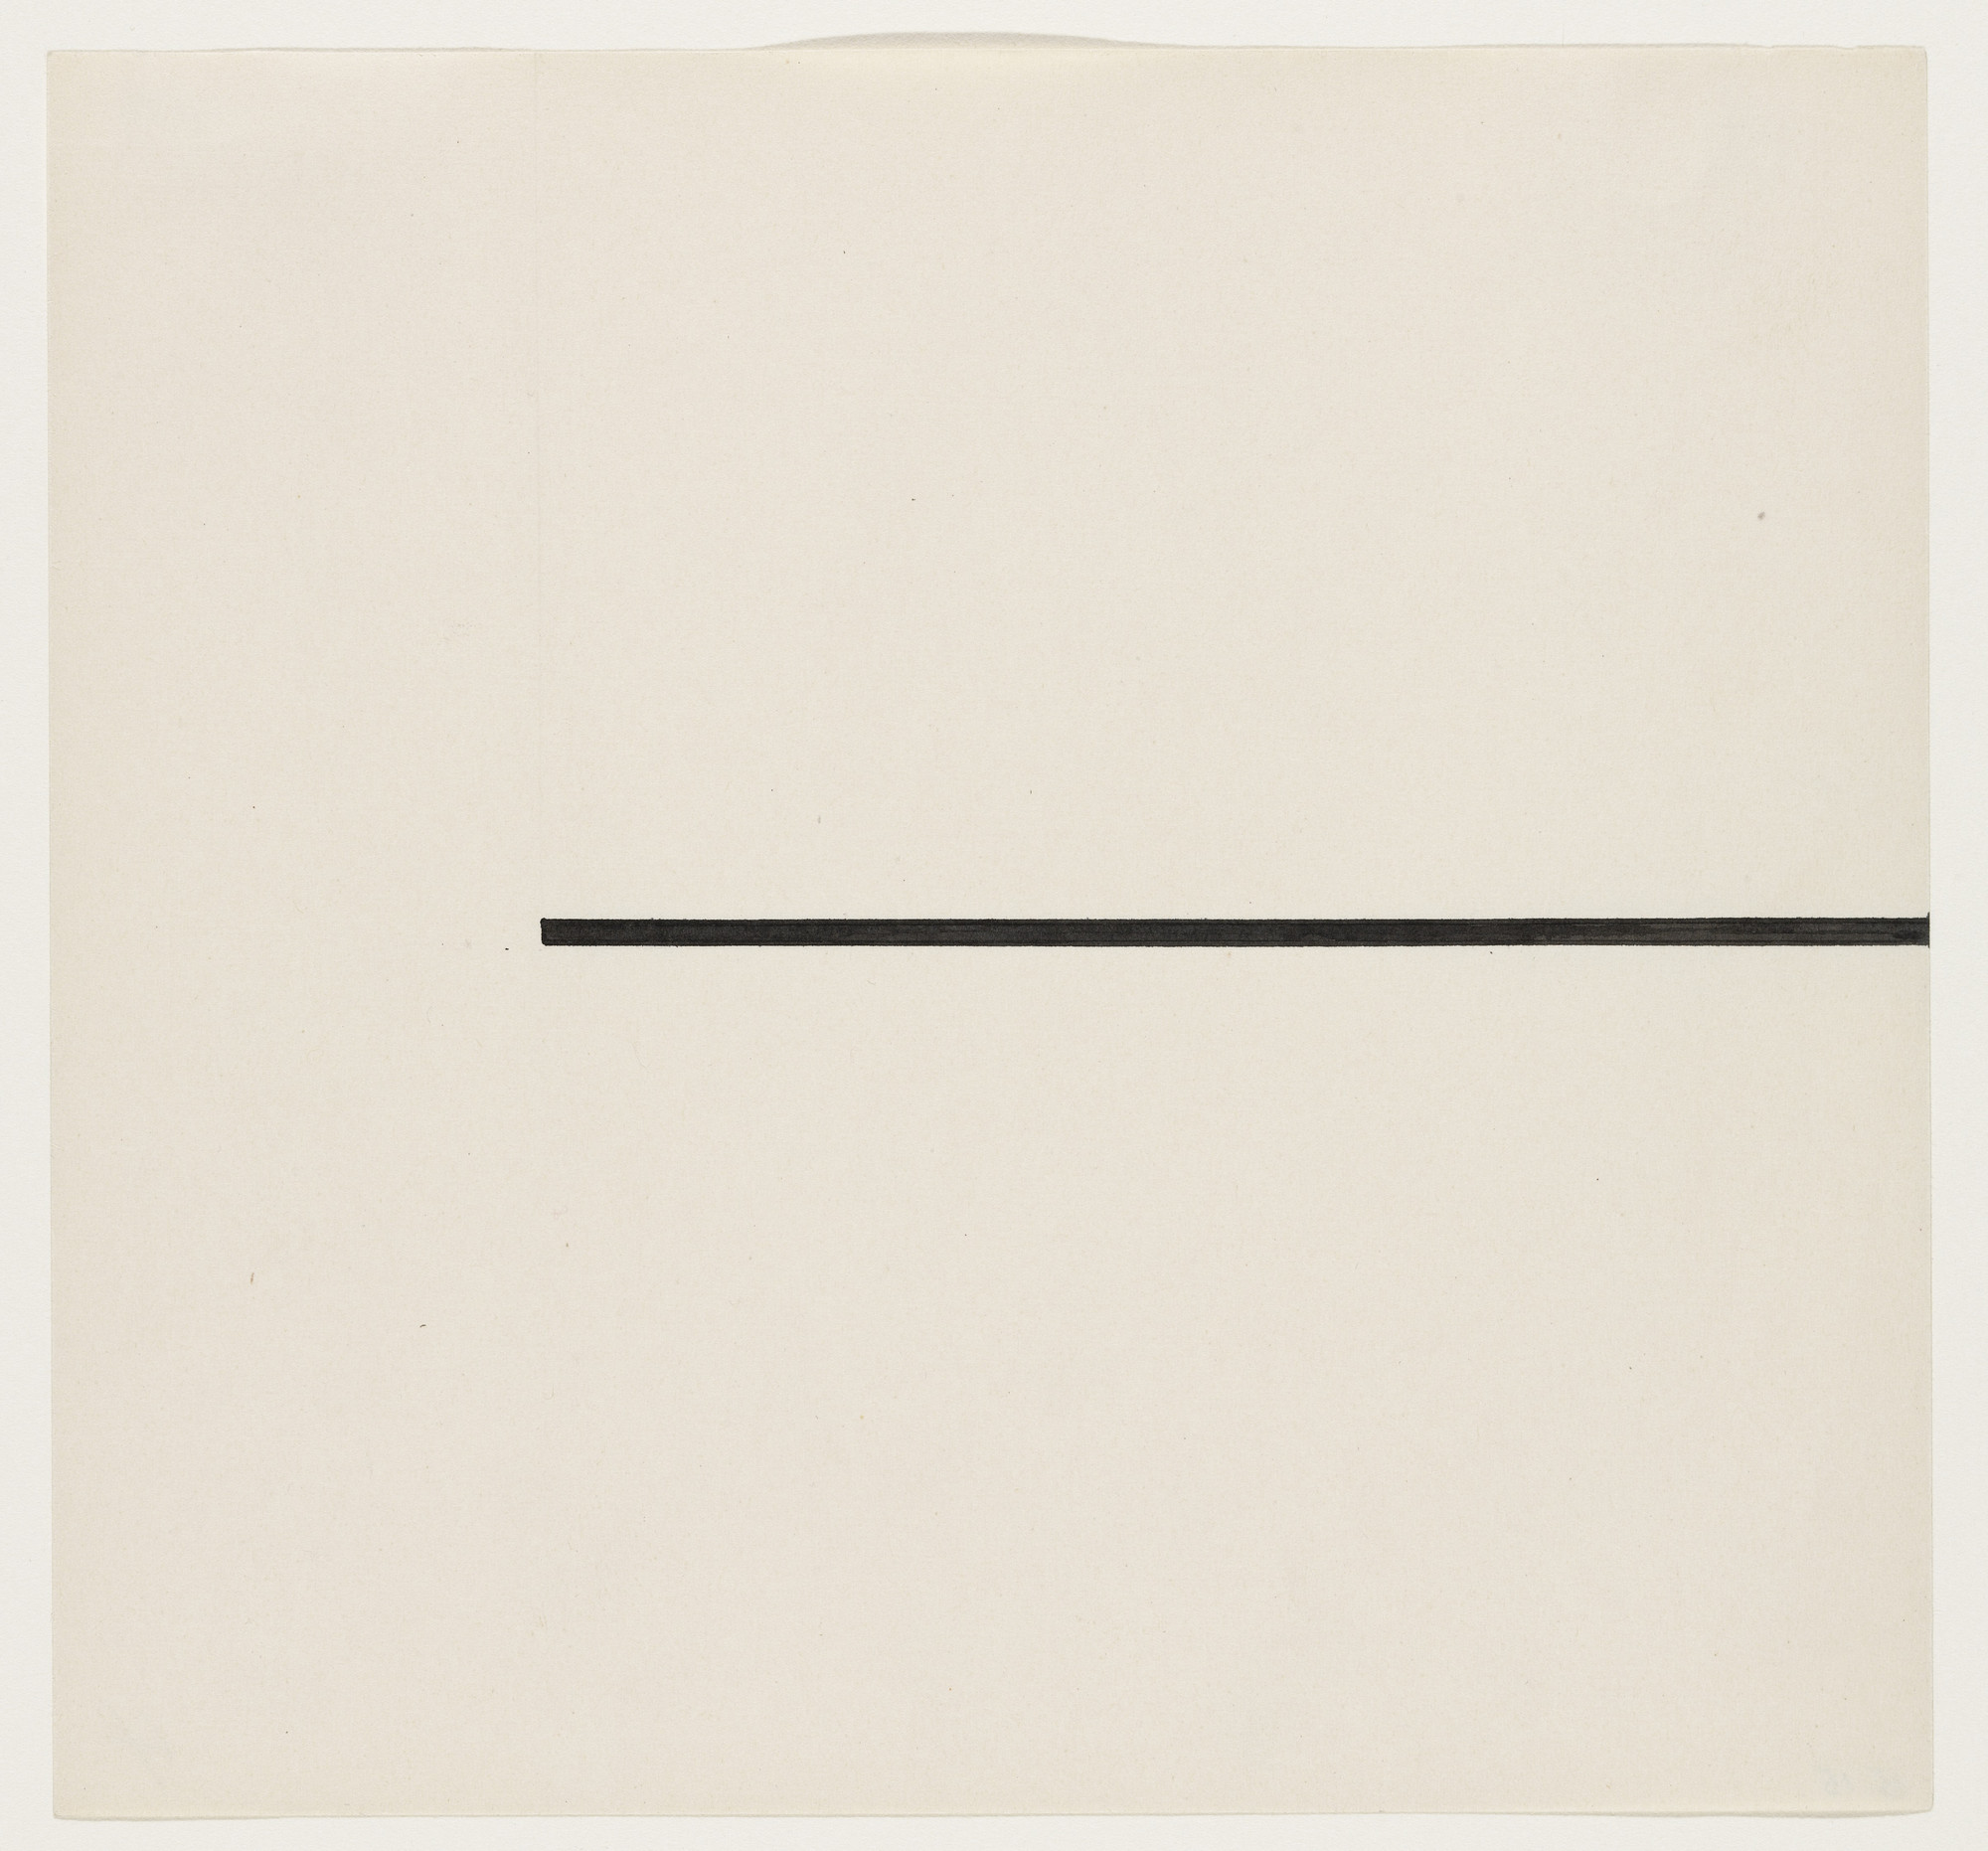 Ellsworth Kelly. Horizontal Line. 1951